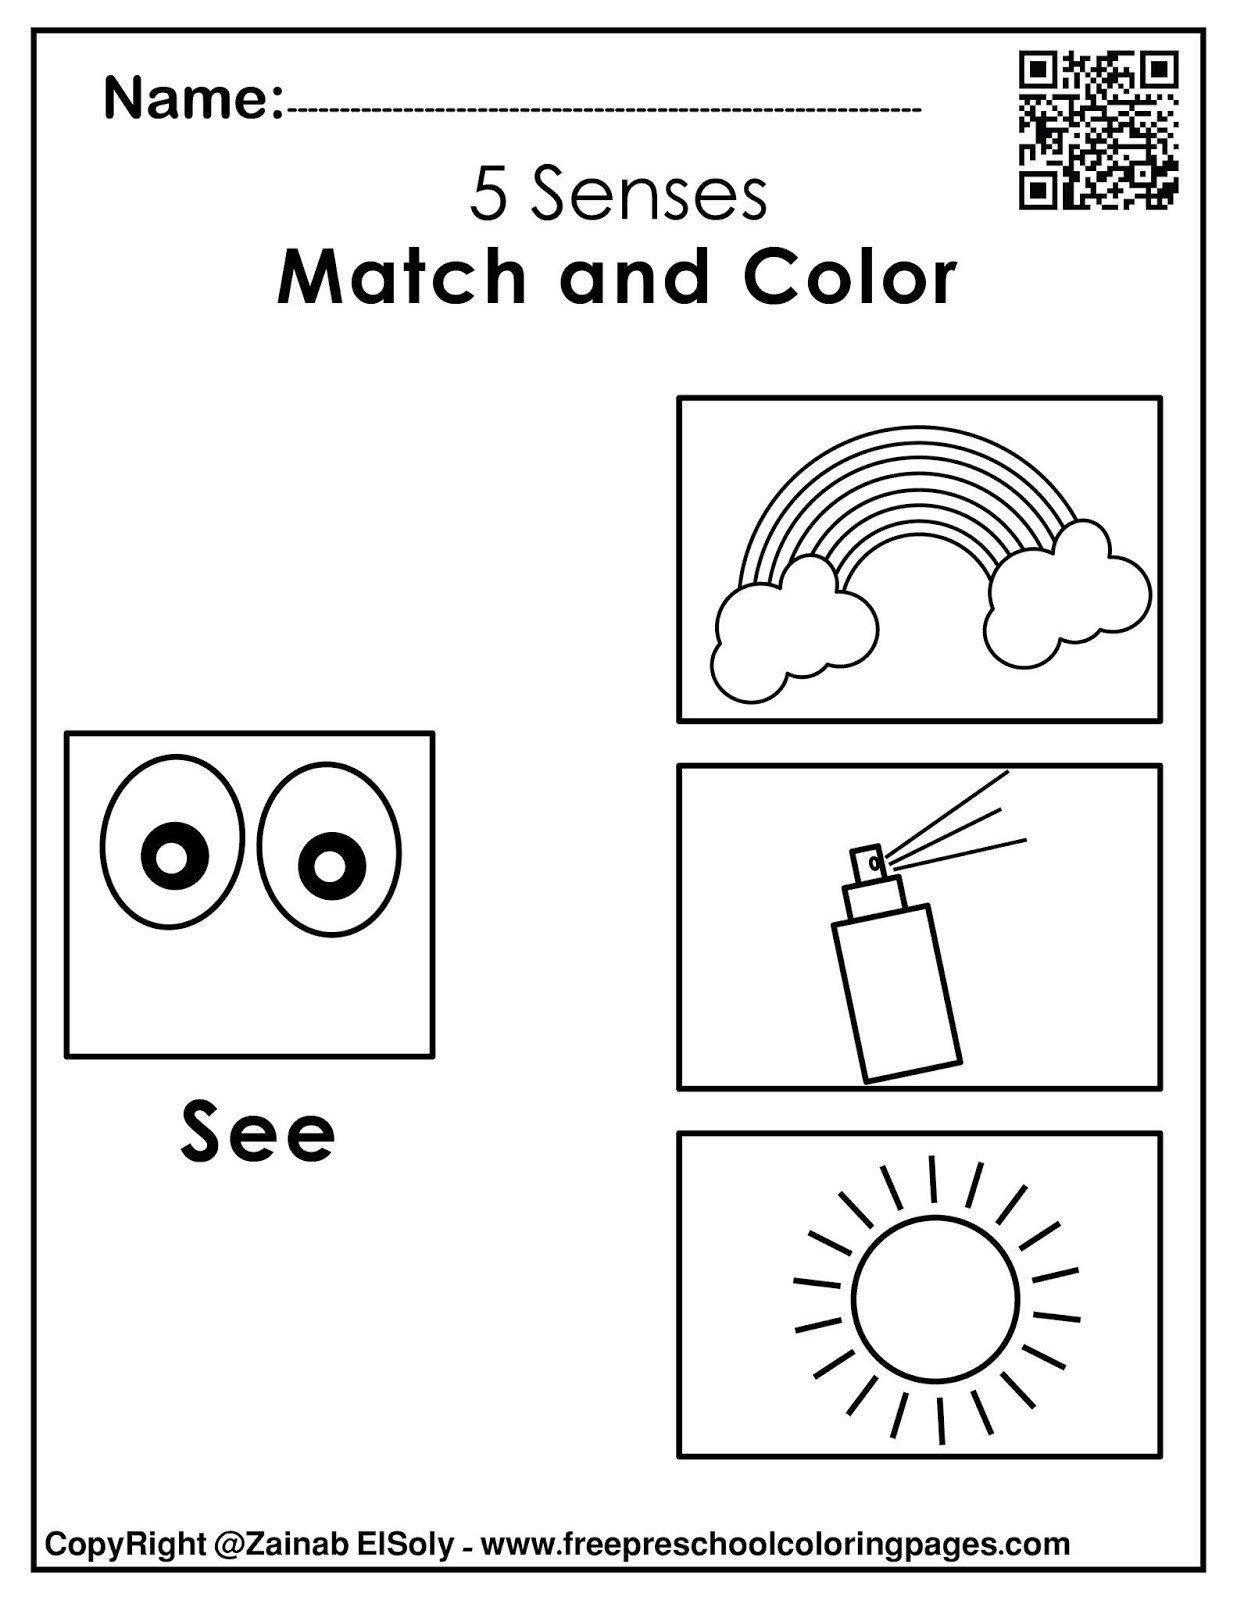 5 Senses Worksheet Preschool Set Of 5 Senses Activities for Kids